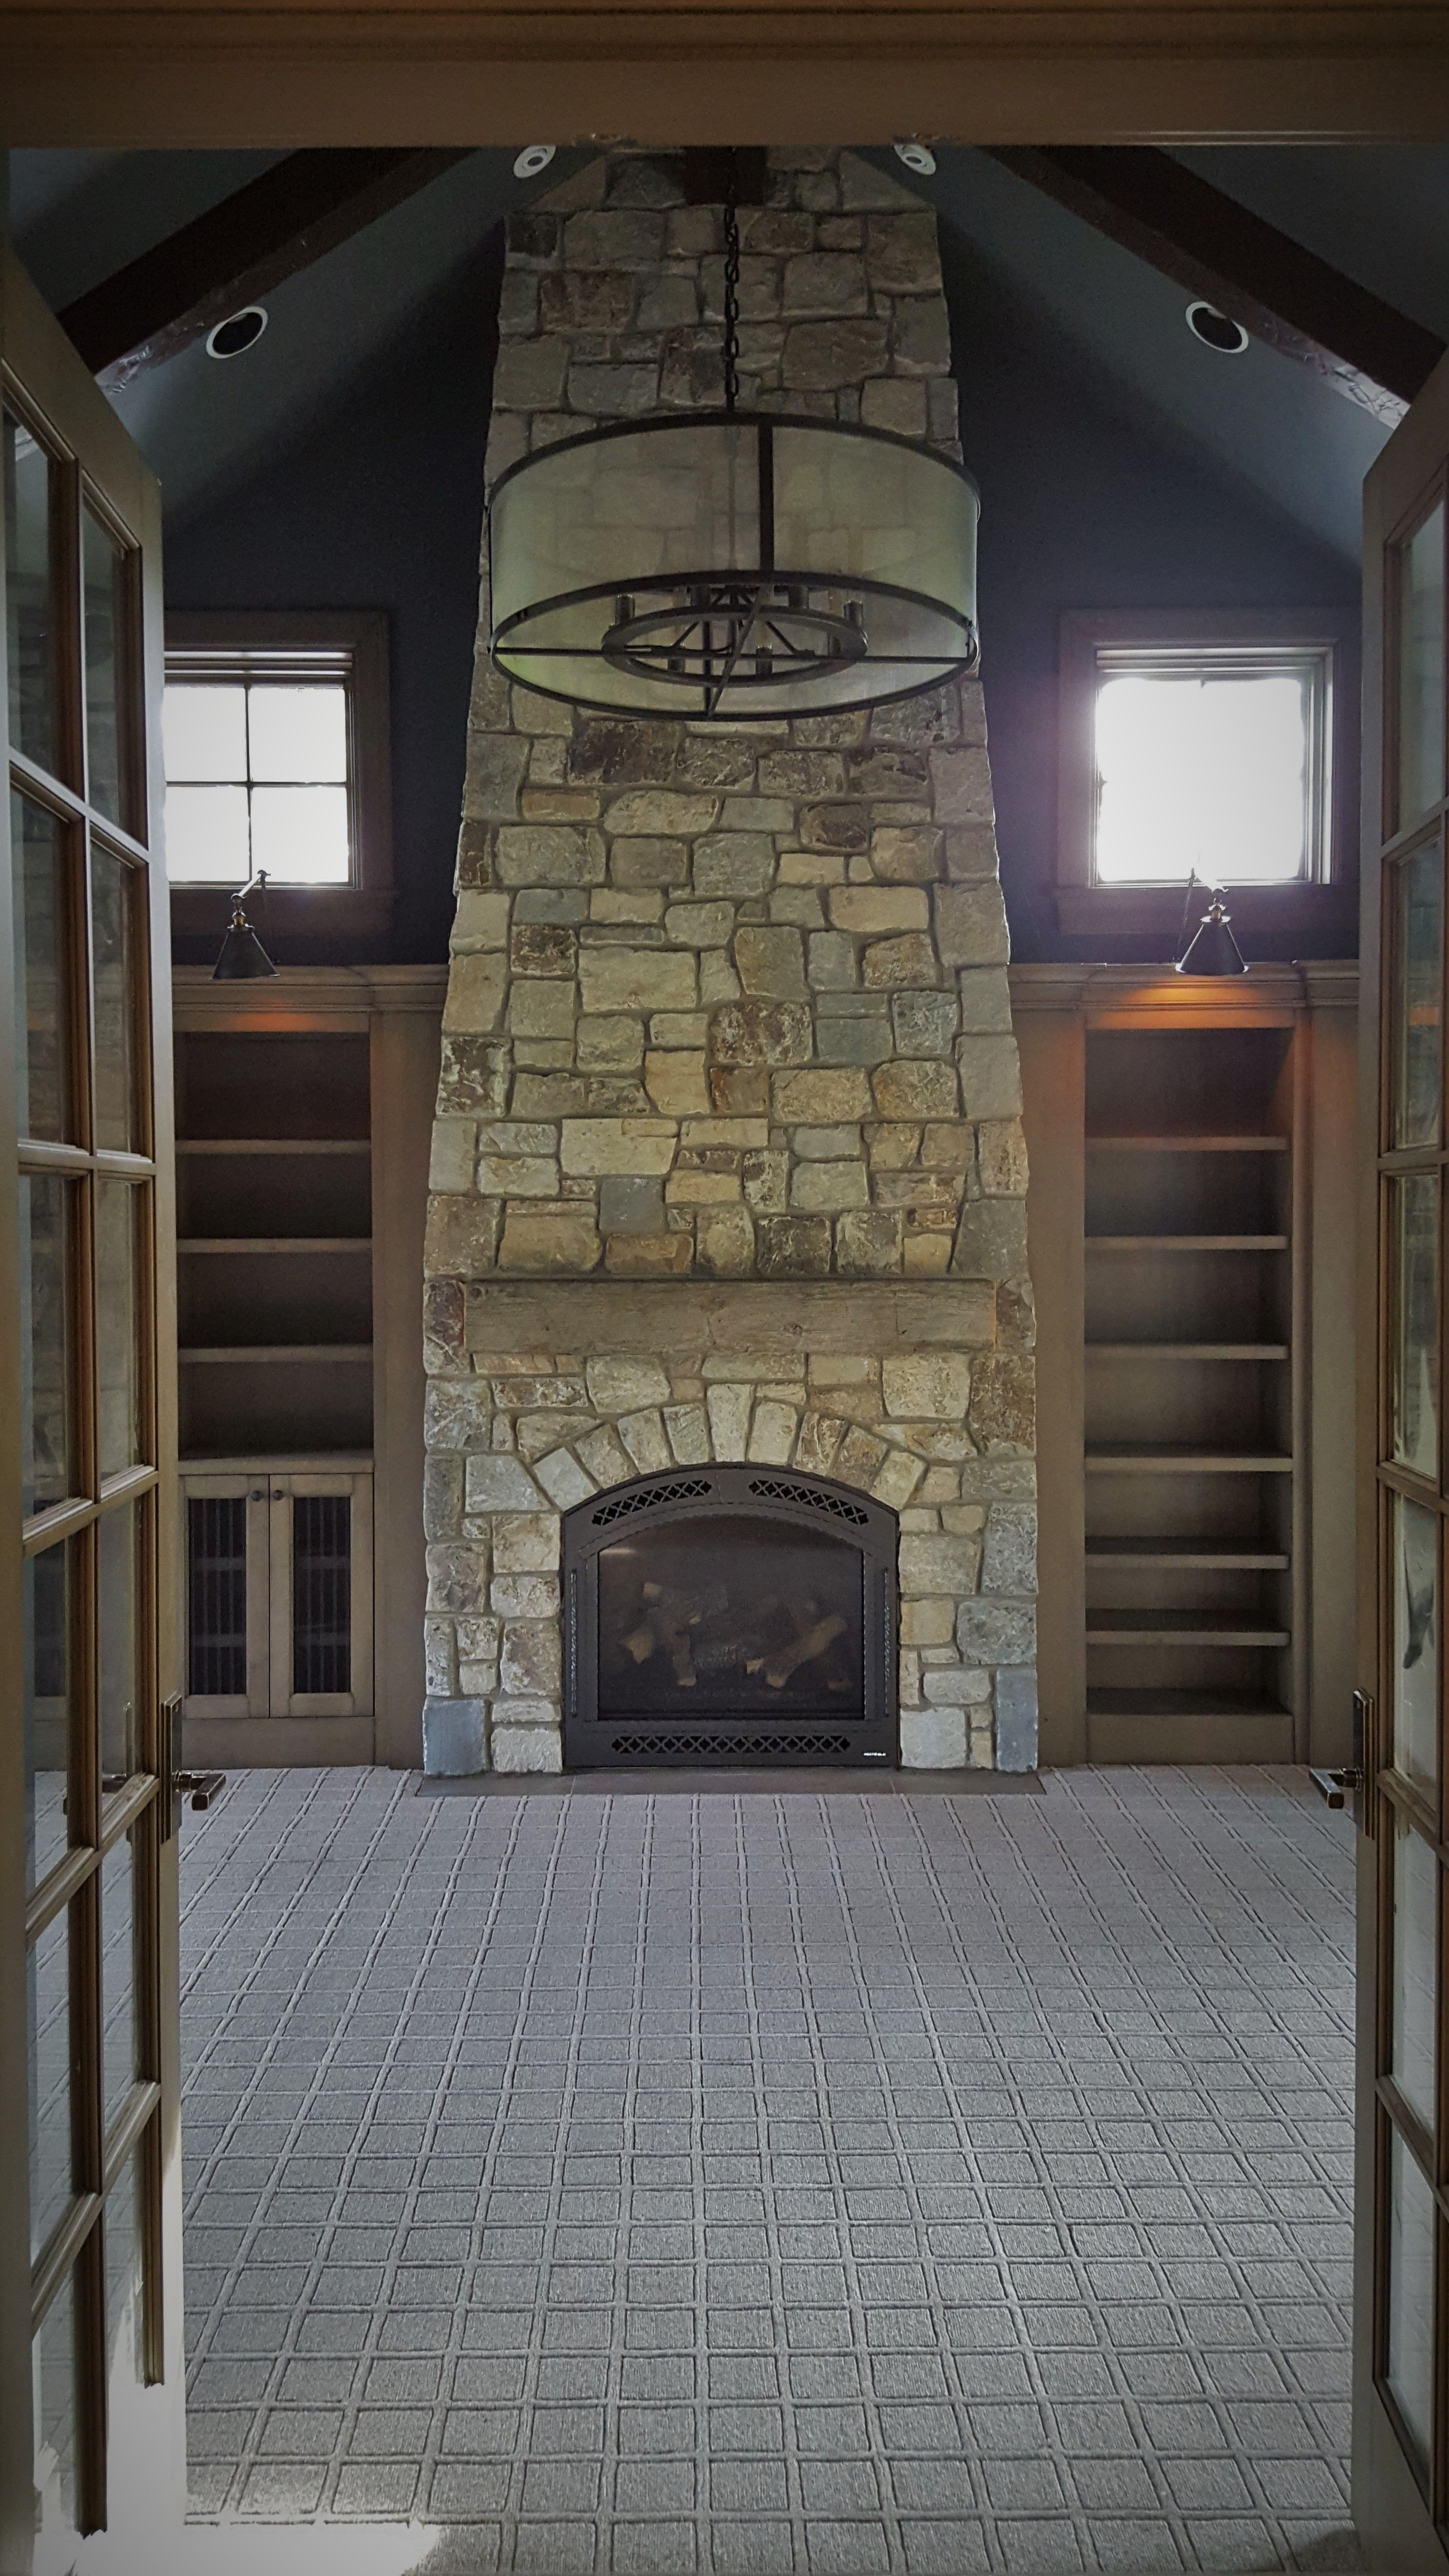 Open Study Room: Natural Stone Fireplace, Office, Den, Study Room, New